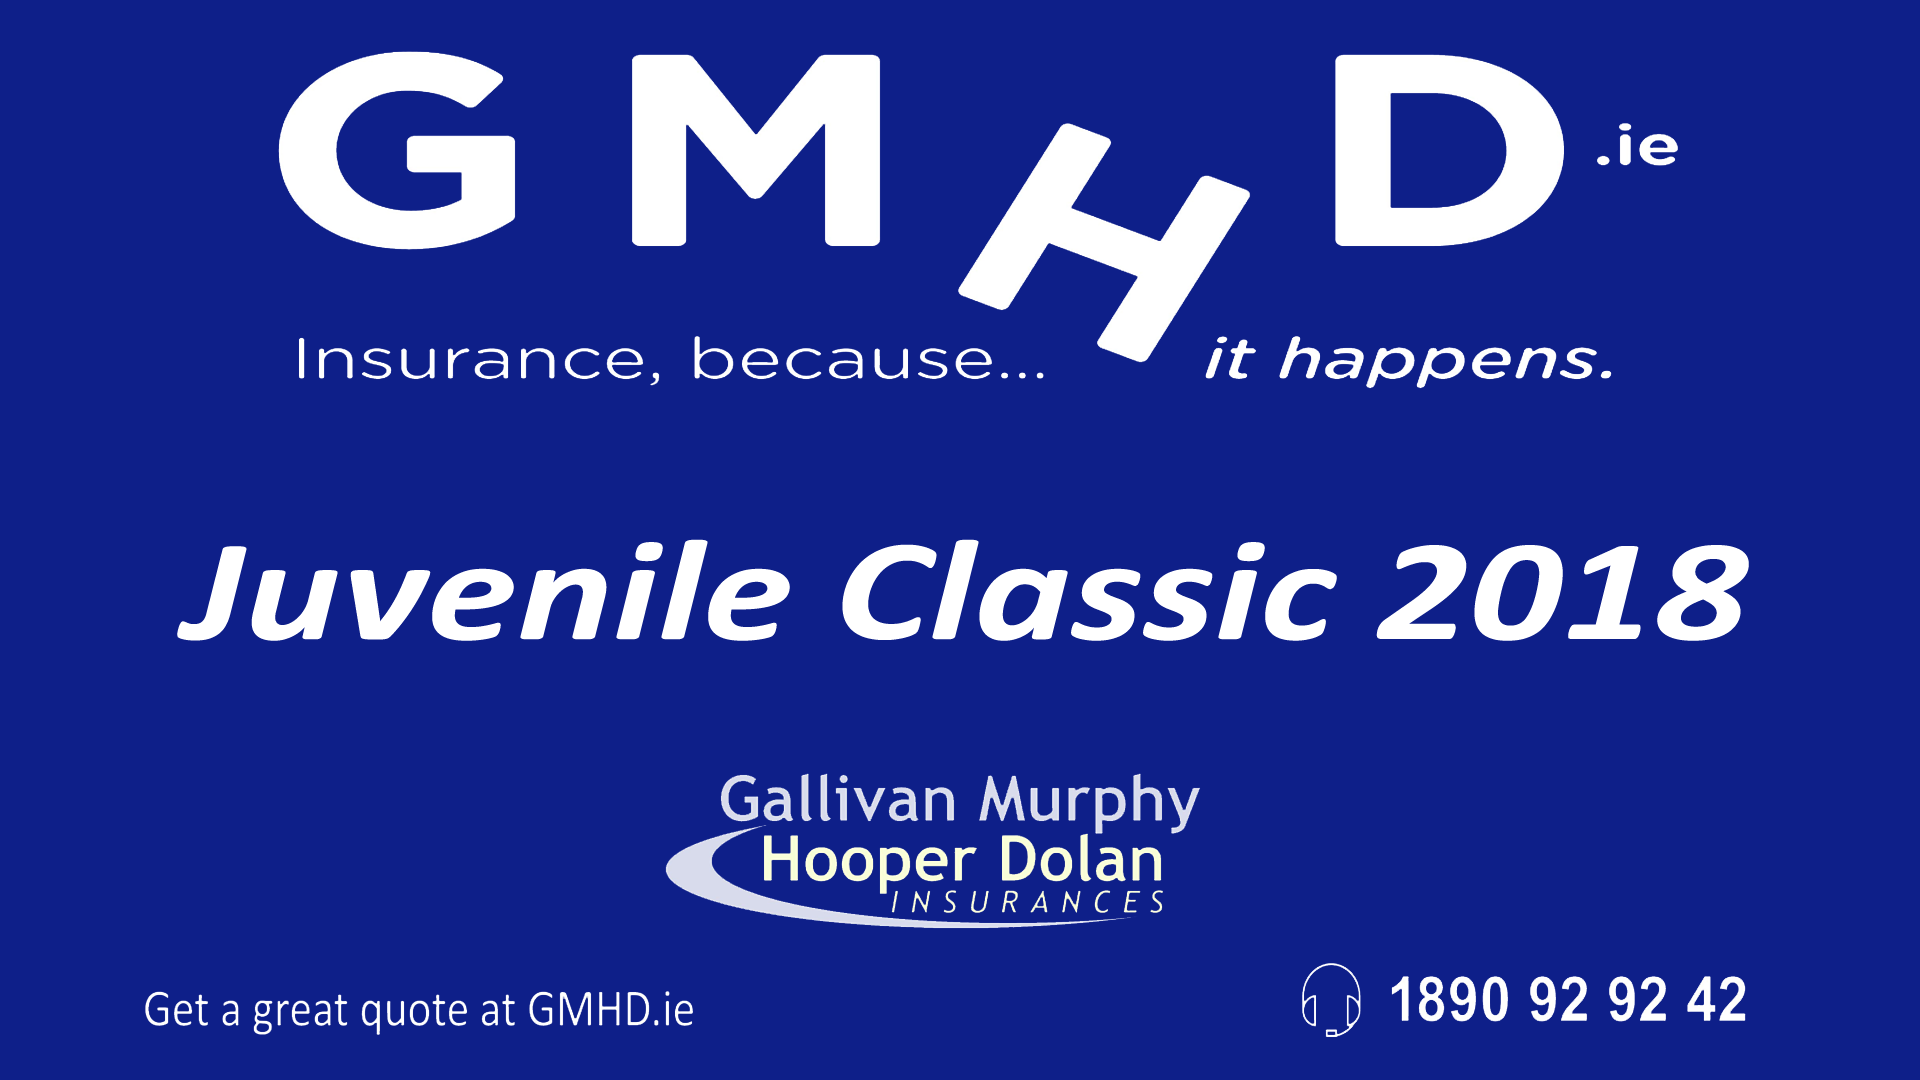 The GMHD.ie Juvenile Classic is on now in Tralee